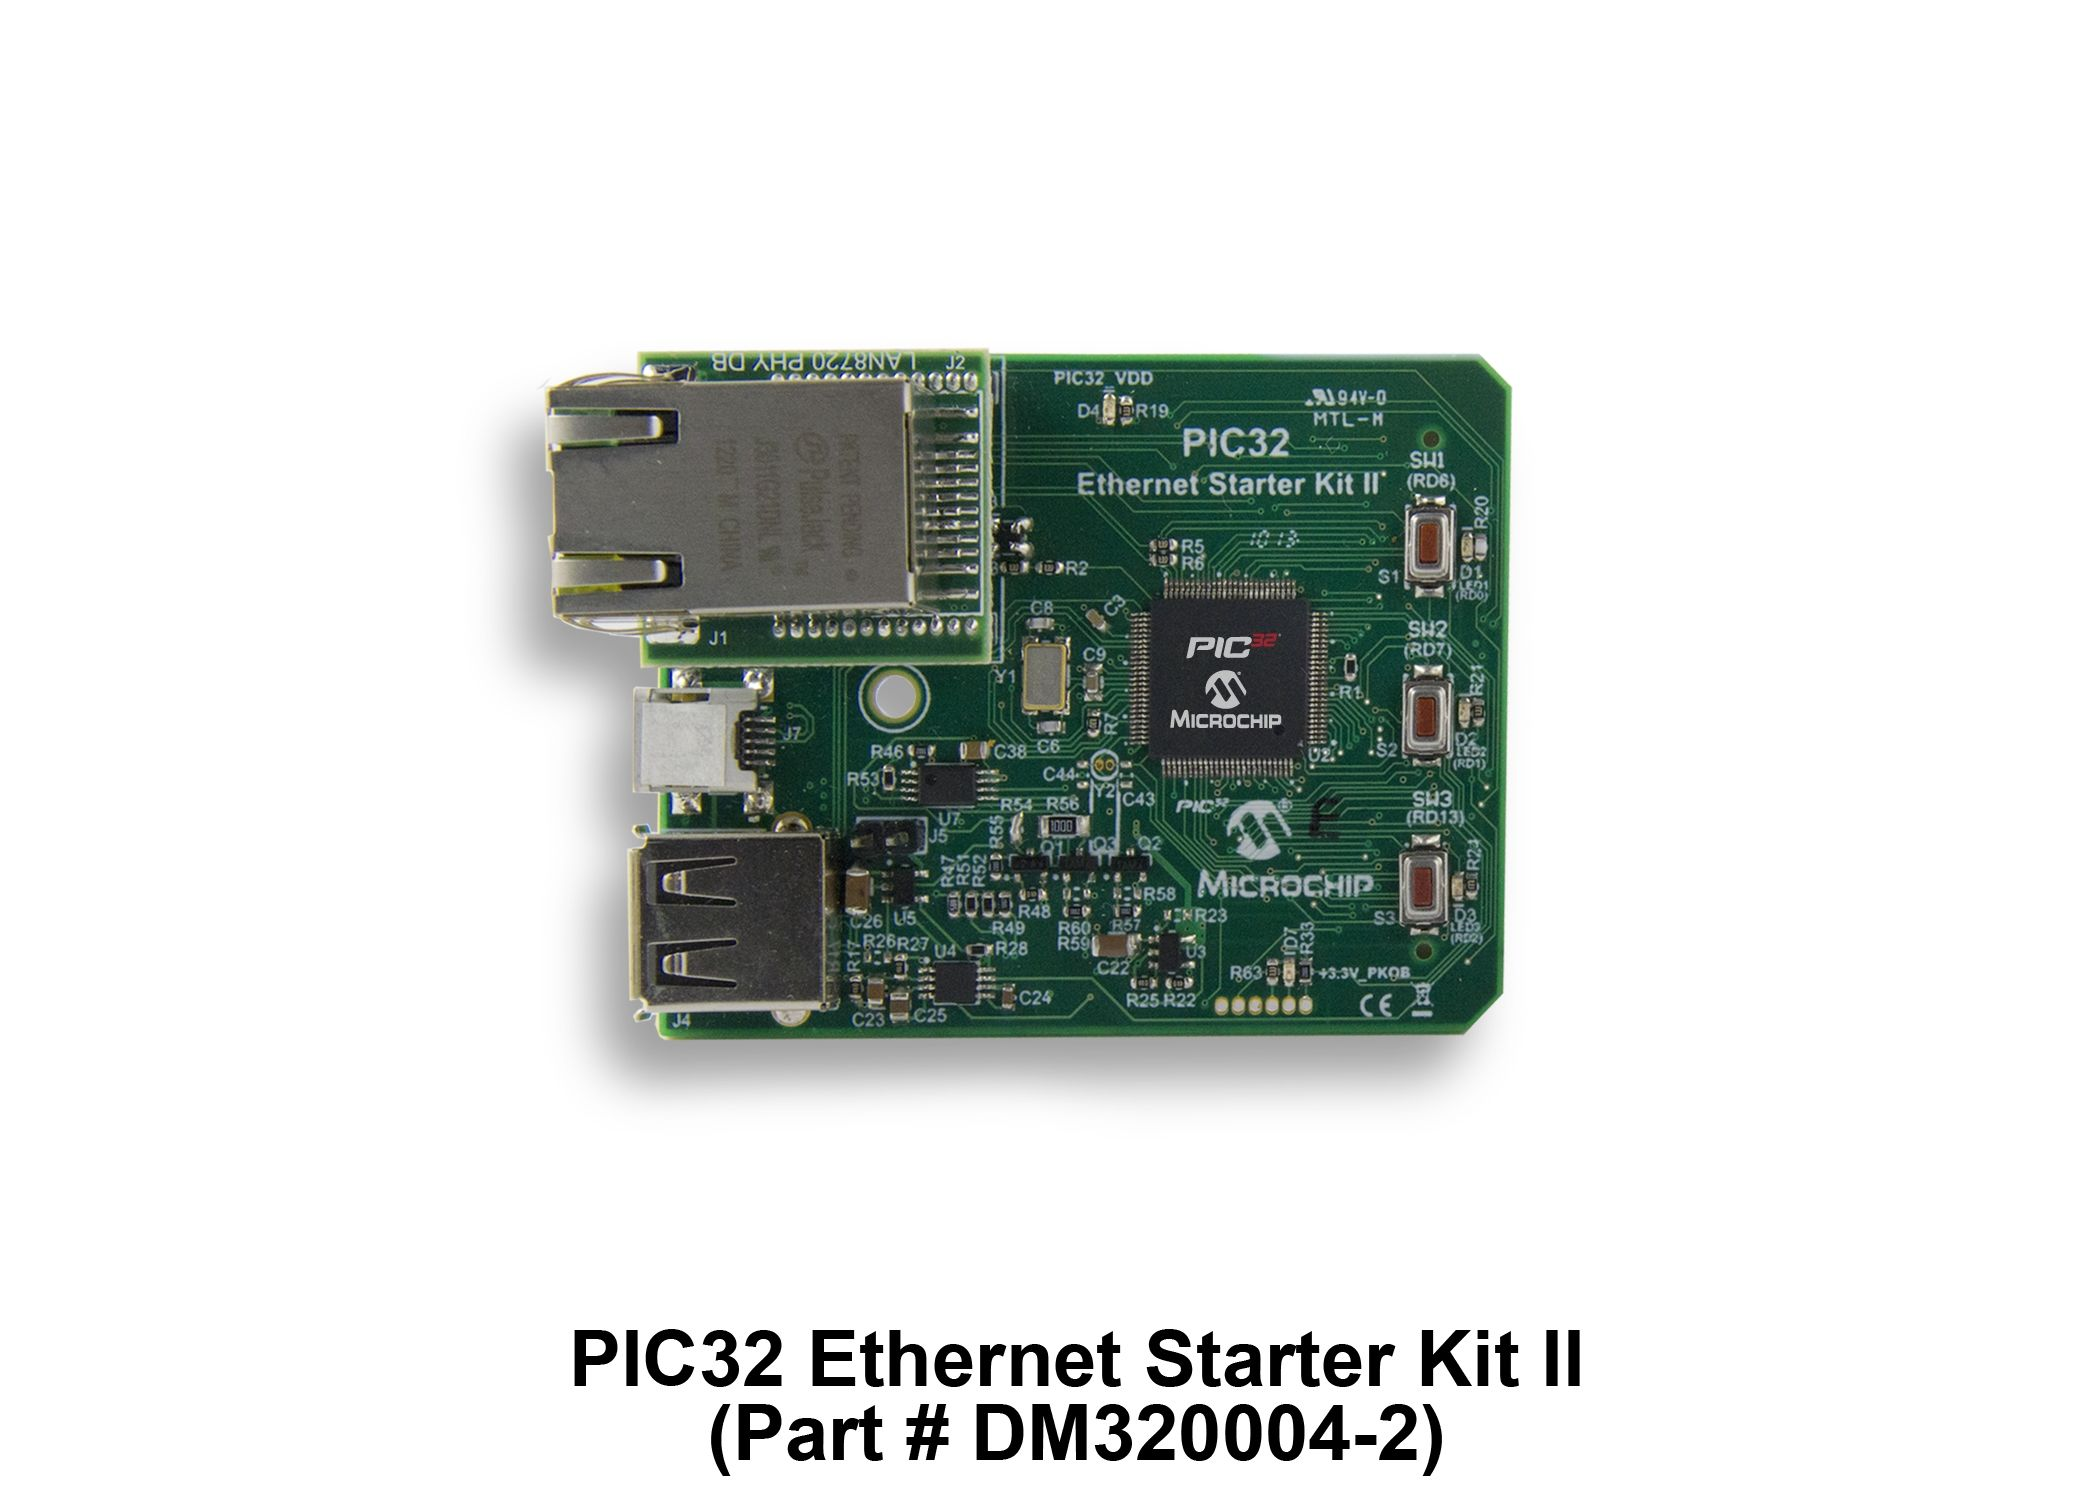 architecture 32 bit pic microcontrollers microchip technologypic32 ethernet starter kit ii